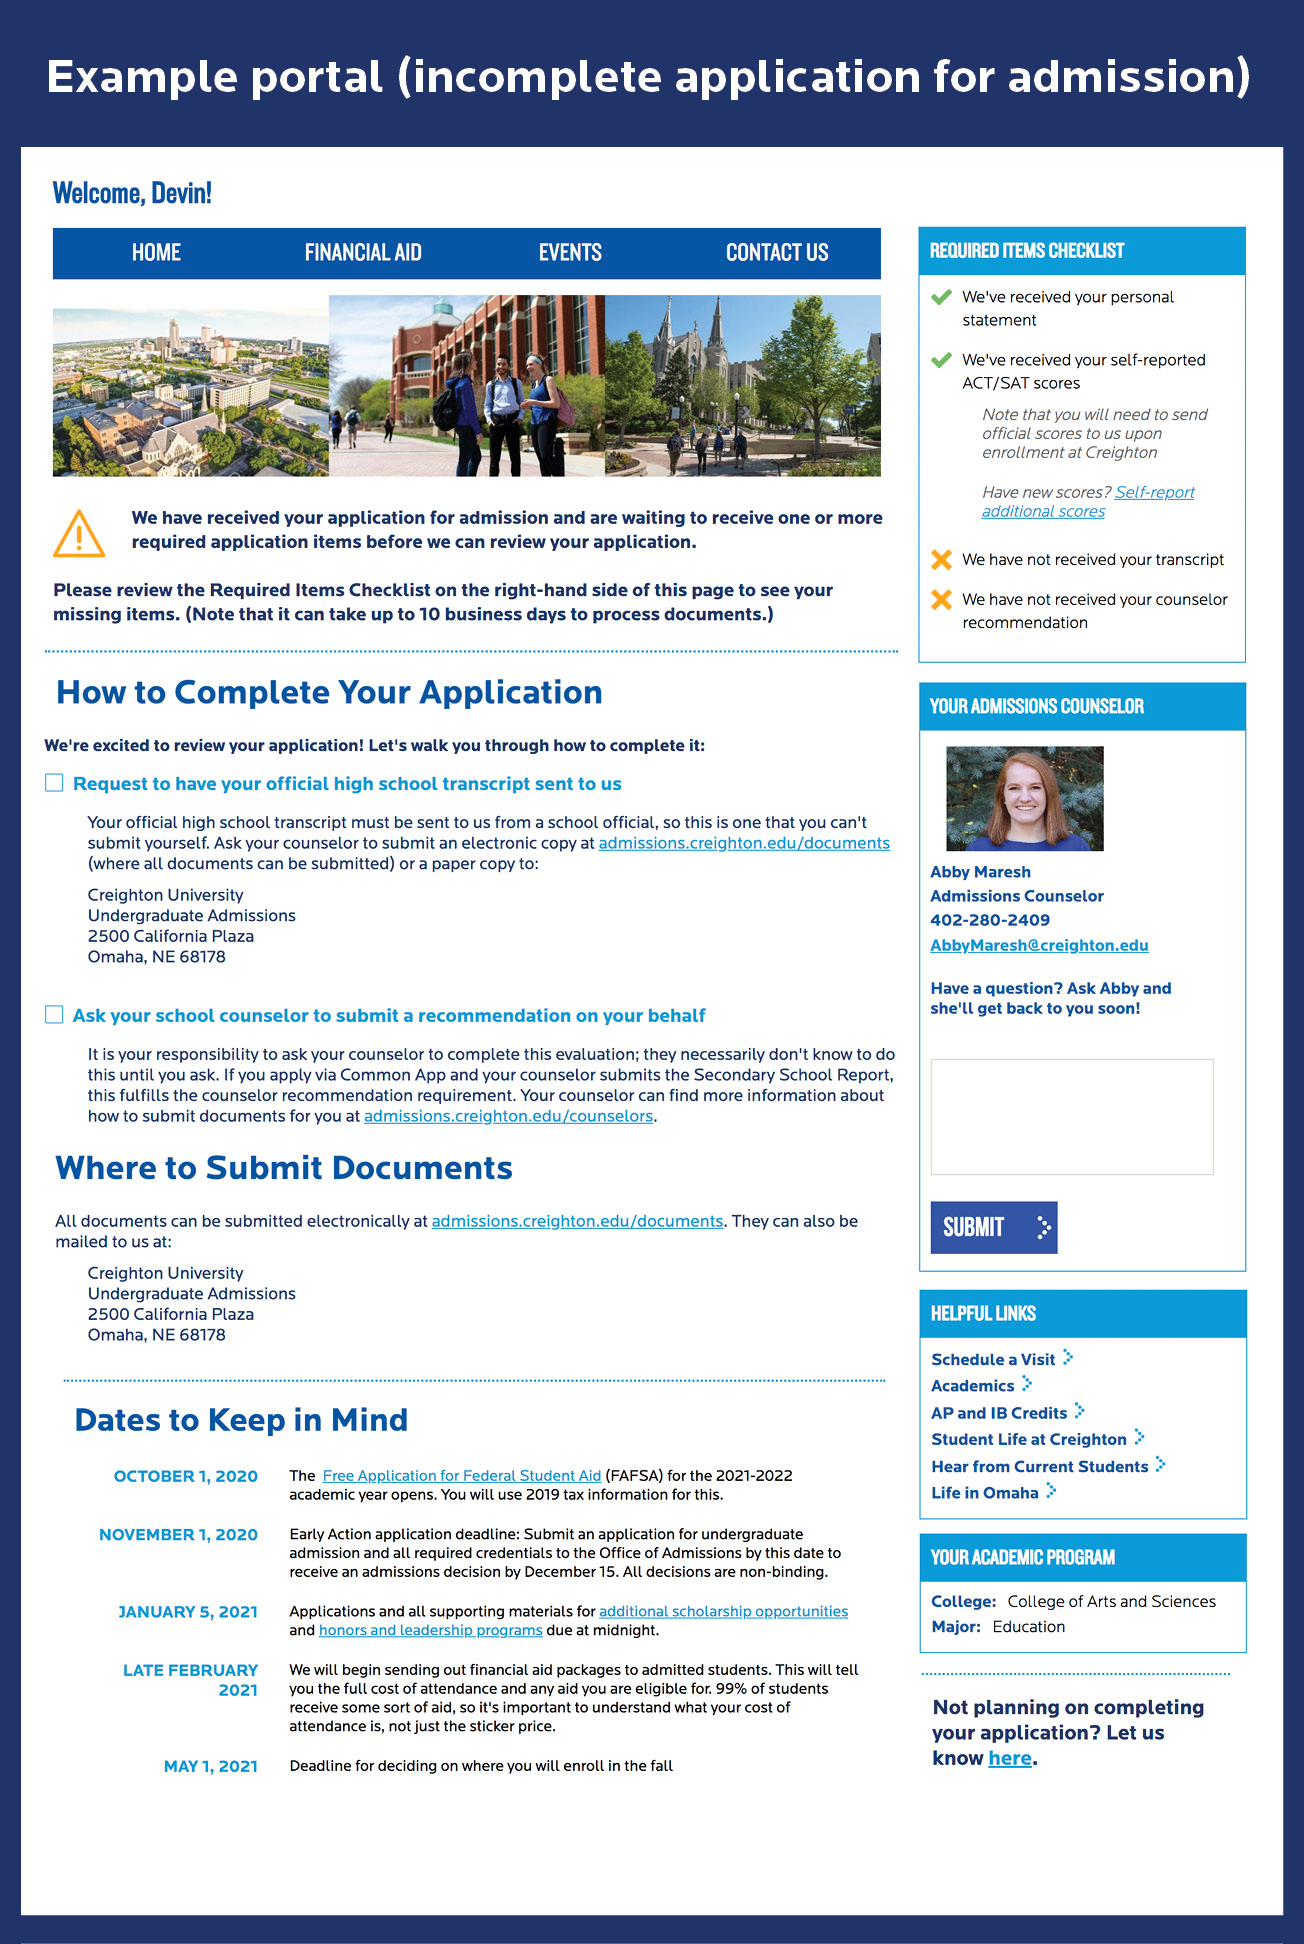 Student portal view for a student with an incomplete application for admission